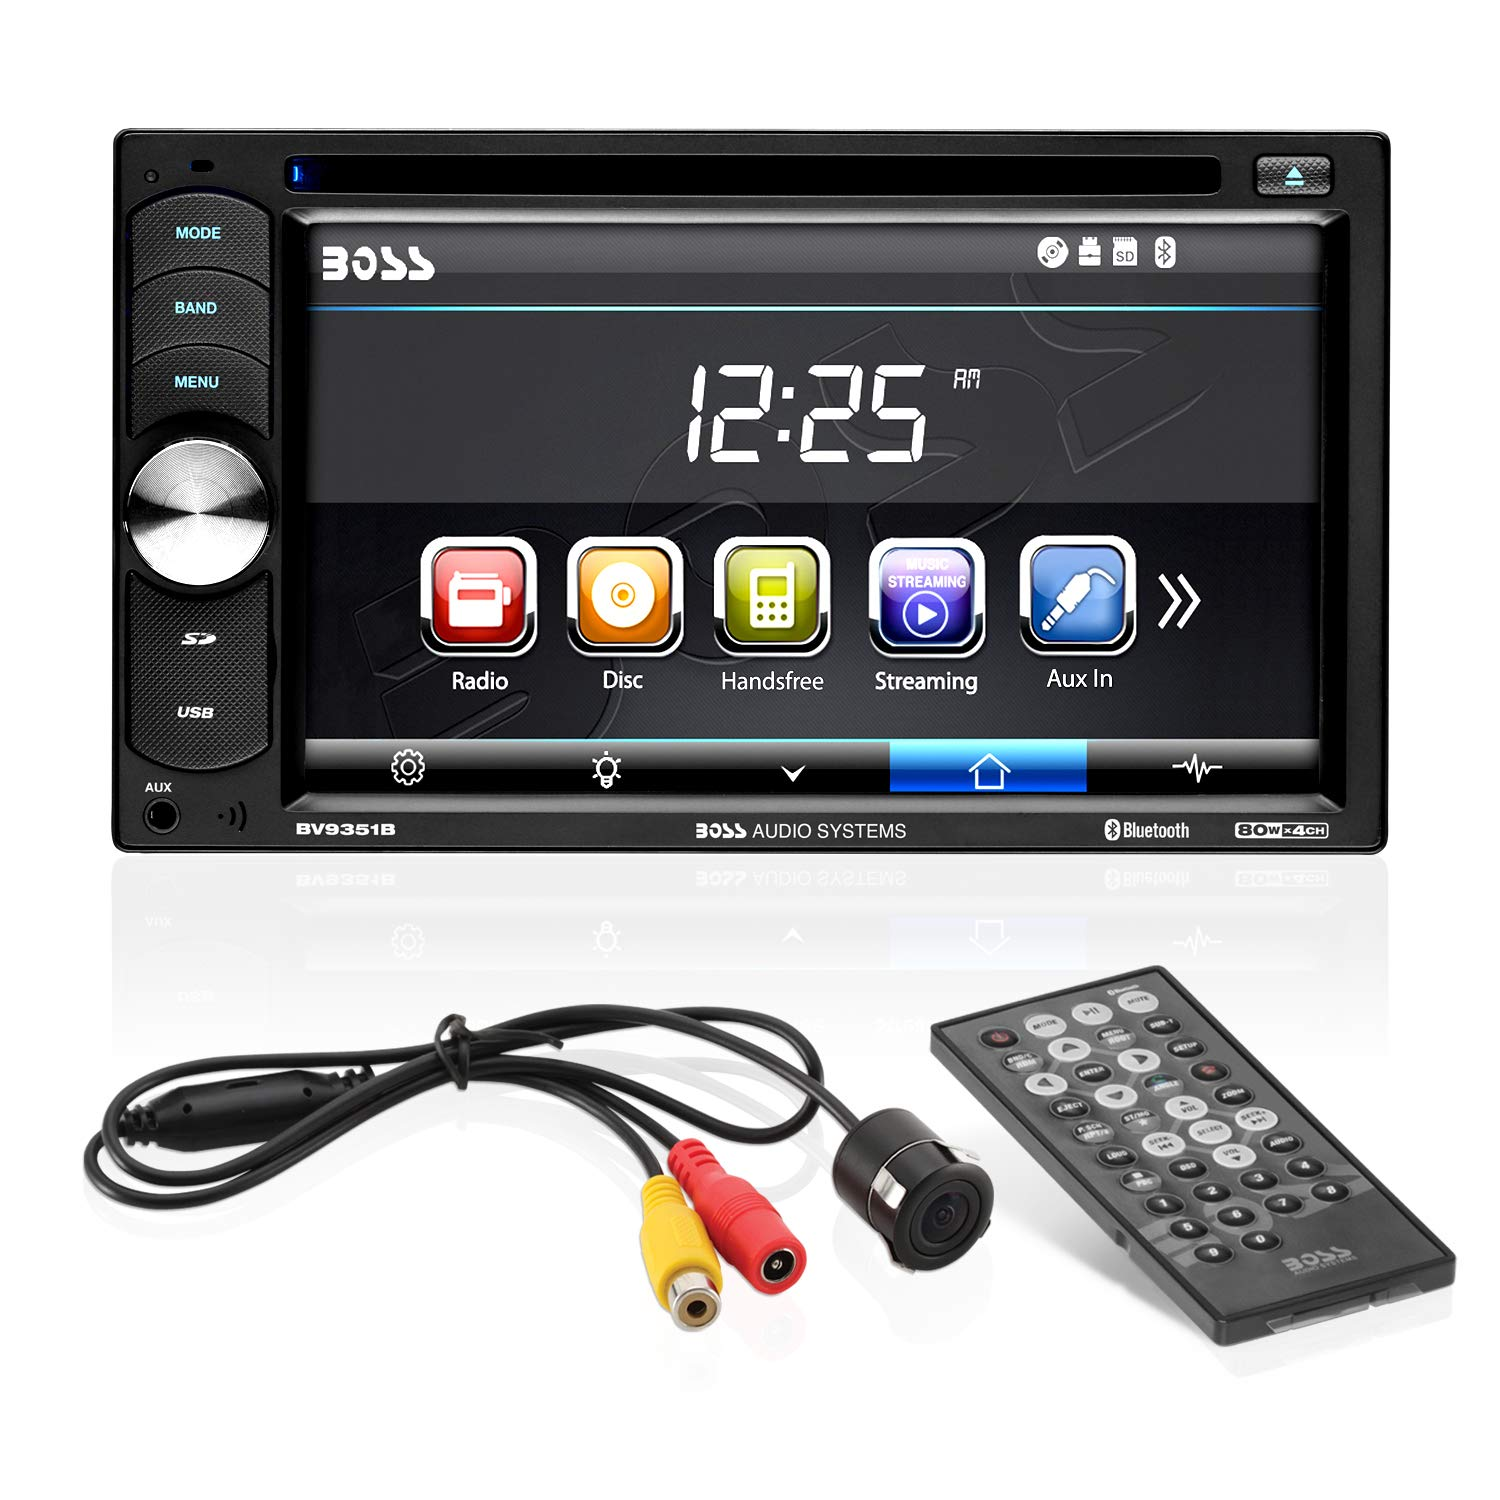 Boss Audio Systems BVB9351RC Car DVD Player with Backup Rearview Camera - Double Din, Bluetooth Audio Calling, 6.2 Inch LCD Touchscreen Monitor, MP3 CD DVD USB SD, Aux-in, AM FM Radio Receiver by BOSS Audio Systems